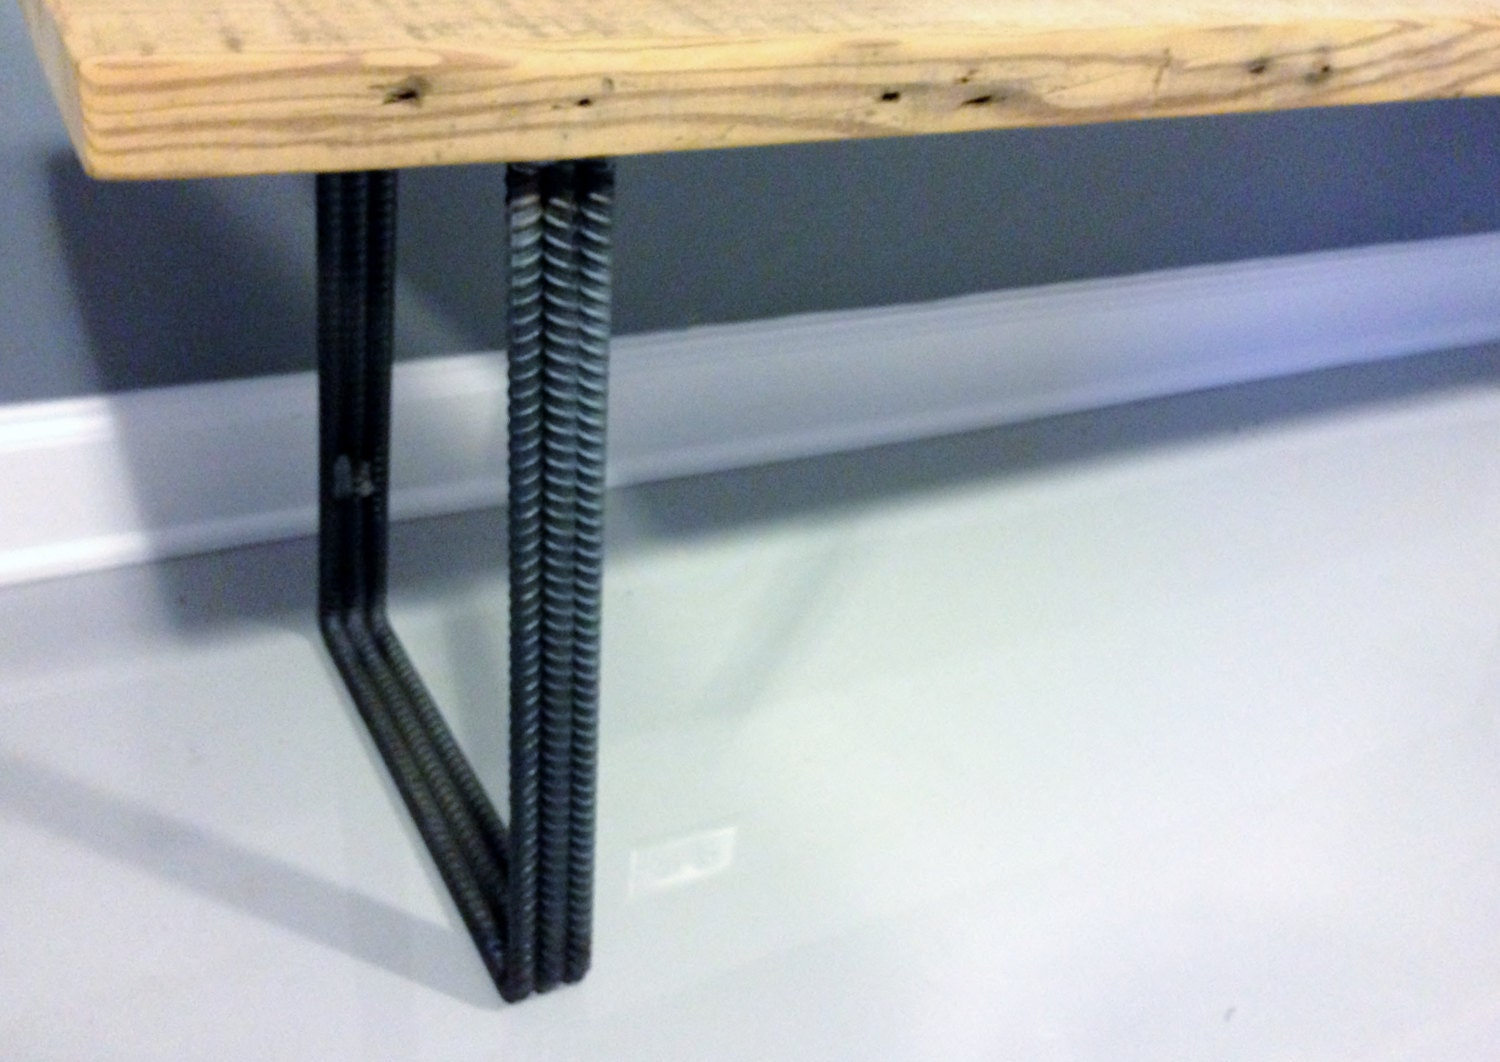 Superb img of Steel Leg Bench Reclaimed Wood Bench DIning Bench by DendroCo with #A1722A color and 1500x1062 pixels